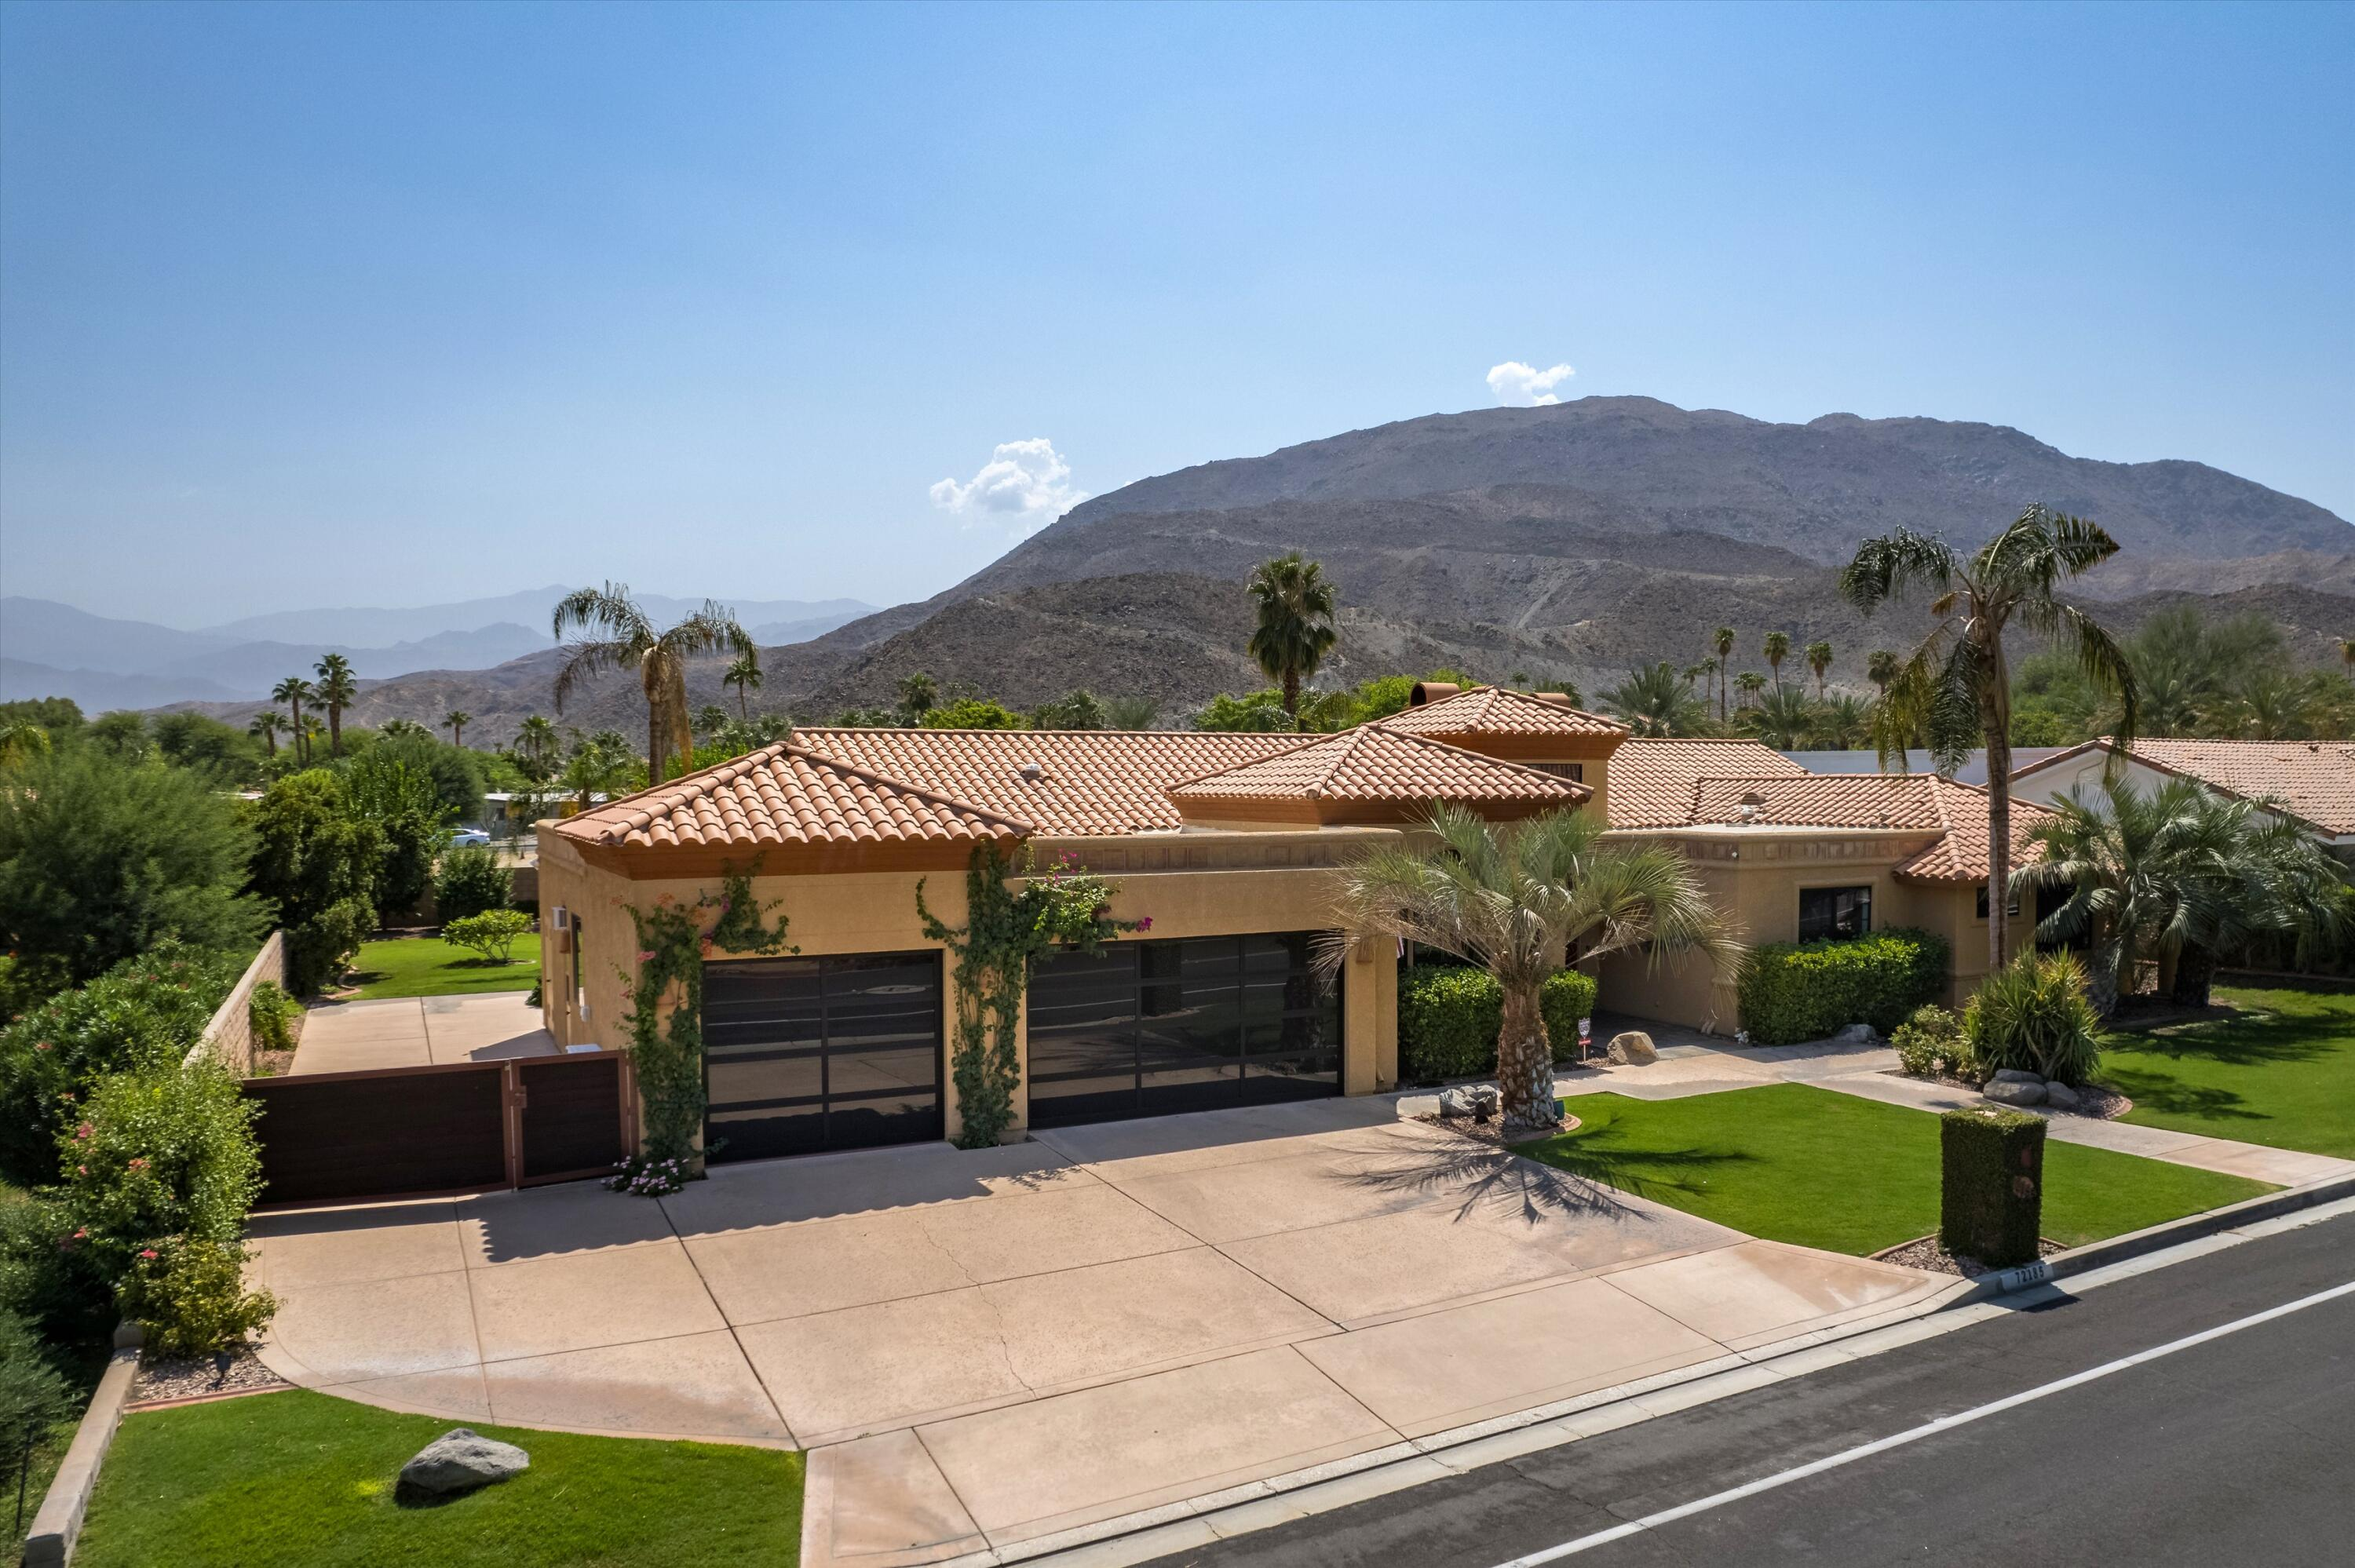 Sensational view, large lot, desired location. Three-bedroom, 2.5 bath, two offices with built ins, custom home, offers all the distinctive architectural uniqueness one looks for. Custom Saltillo floors enhance the Spanish feel to the home. Unique family room ceiling boasts ten solid wood beams separated by diagonally placed grape sticks. Graceful arches, tall ceilings, sculptured plaster walls, delightful colorful kitchen with remote controlled window coverings. Separate pantry, hallway & kitchen cabinets provide extensive storage space. Soft drink refrigerator, separate icemaker, ceiling fans & shutters throughout. Large bedrooms, exceptional master bath with oversized jacuzzi tub. Custom surround fireplaces in family room and master bedroom. 40-foot covered patio with misting system boasts new Lincoln tiled floors & ceiling fans. Pool/spa deck newly resurfaced with Marbilite, large, landscaped backyard with lemon & orange tree, many Bougainvillea bushes. RUV concrete pad side of building. Garage offers 6 double storage cabinets & work bench, separate air conditioner, 2 cars plus golf cart. New roof 2020 & new furnaces in 2016. 40 paid panel solar system. New glass garage doors. This home is within minutes to The River & it's many restaurants & movie theater. Starbucks, Hobby Lobby and other shopping all in the adjacent shopping center. This stunning home has been nurtured & pampered. 3700 square feet, lot approximately 1/2-acre, White Sun area, Rancho Mirage. Call Today!